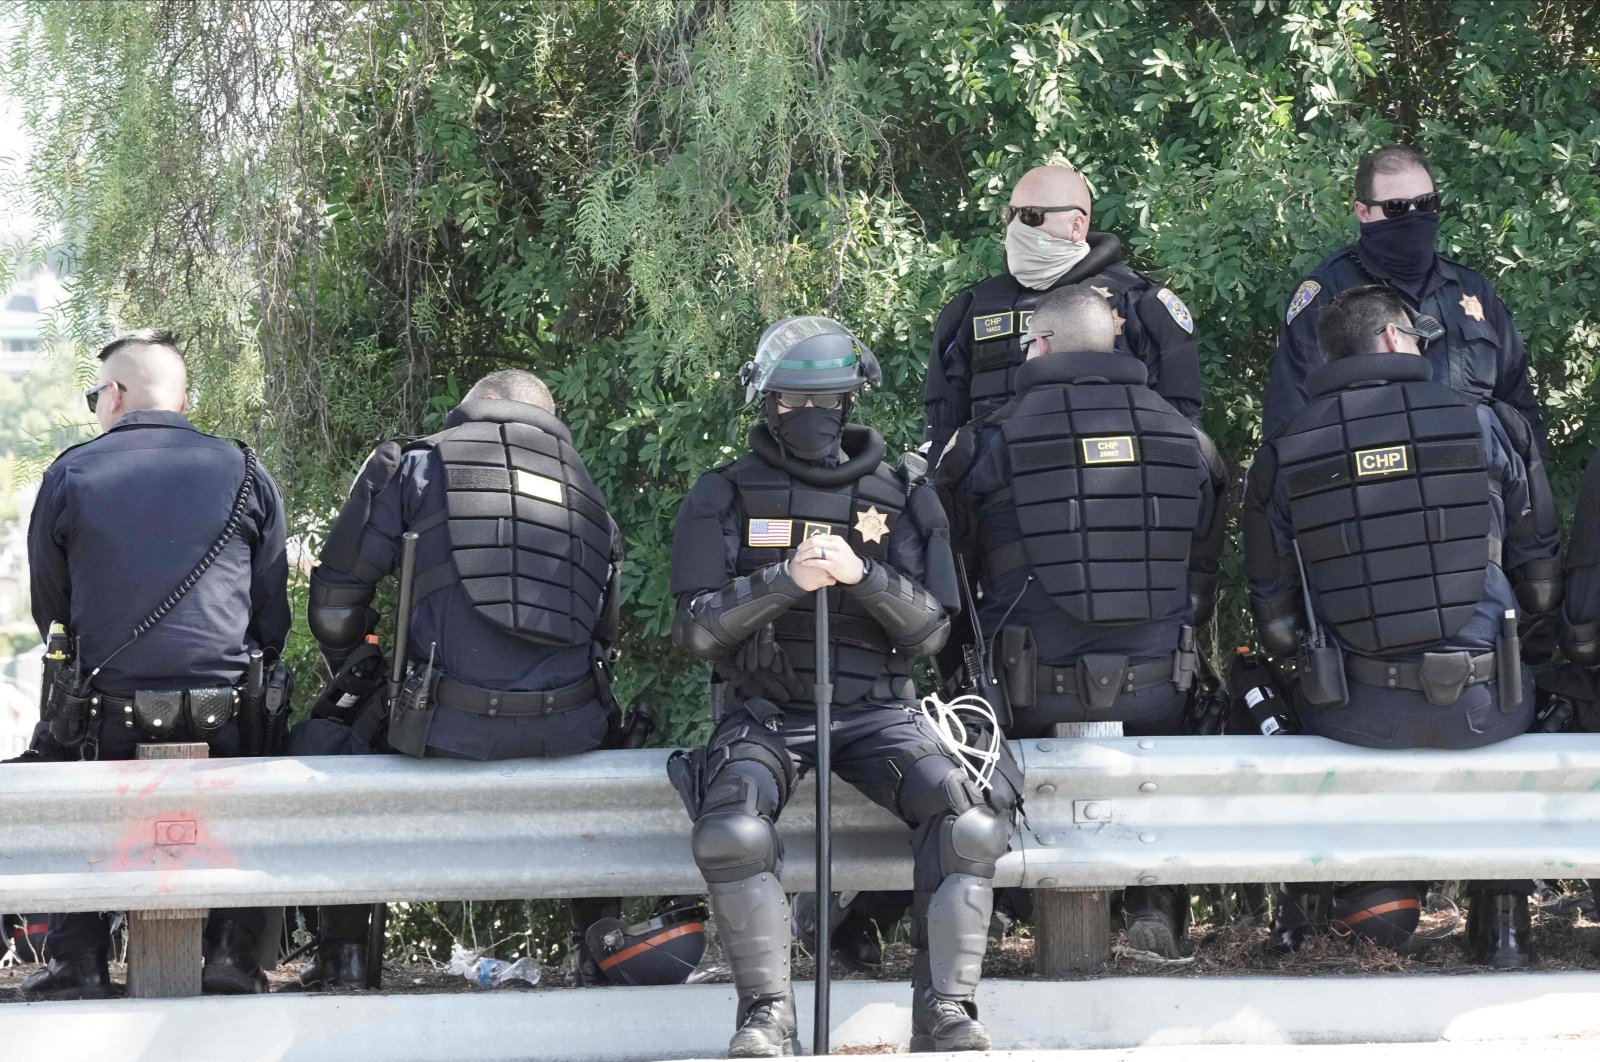 California Highway Patrol officers in riot gear rest on a bridge near a Black Lives Matter protest against racial injustice and police brutality, La Mesa, California, Aug. 1, 2020. (AFP Photo)